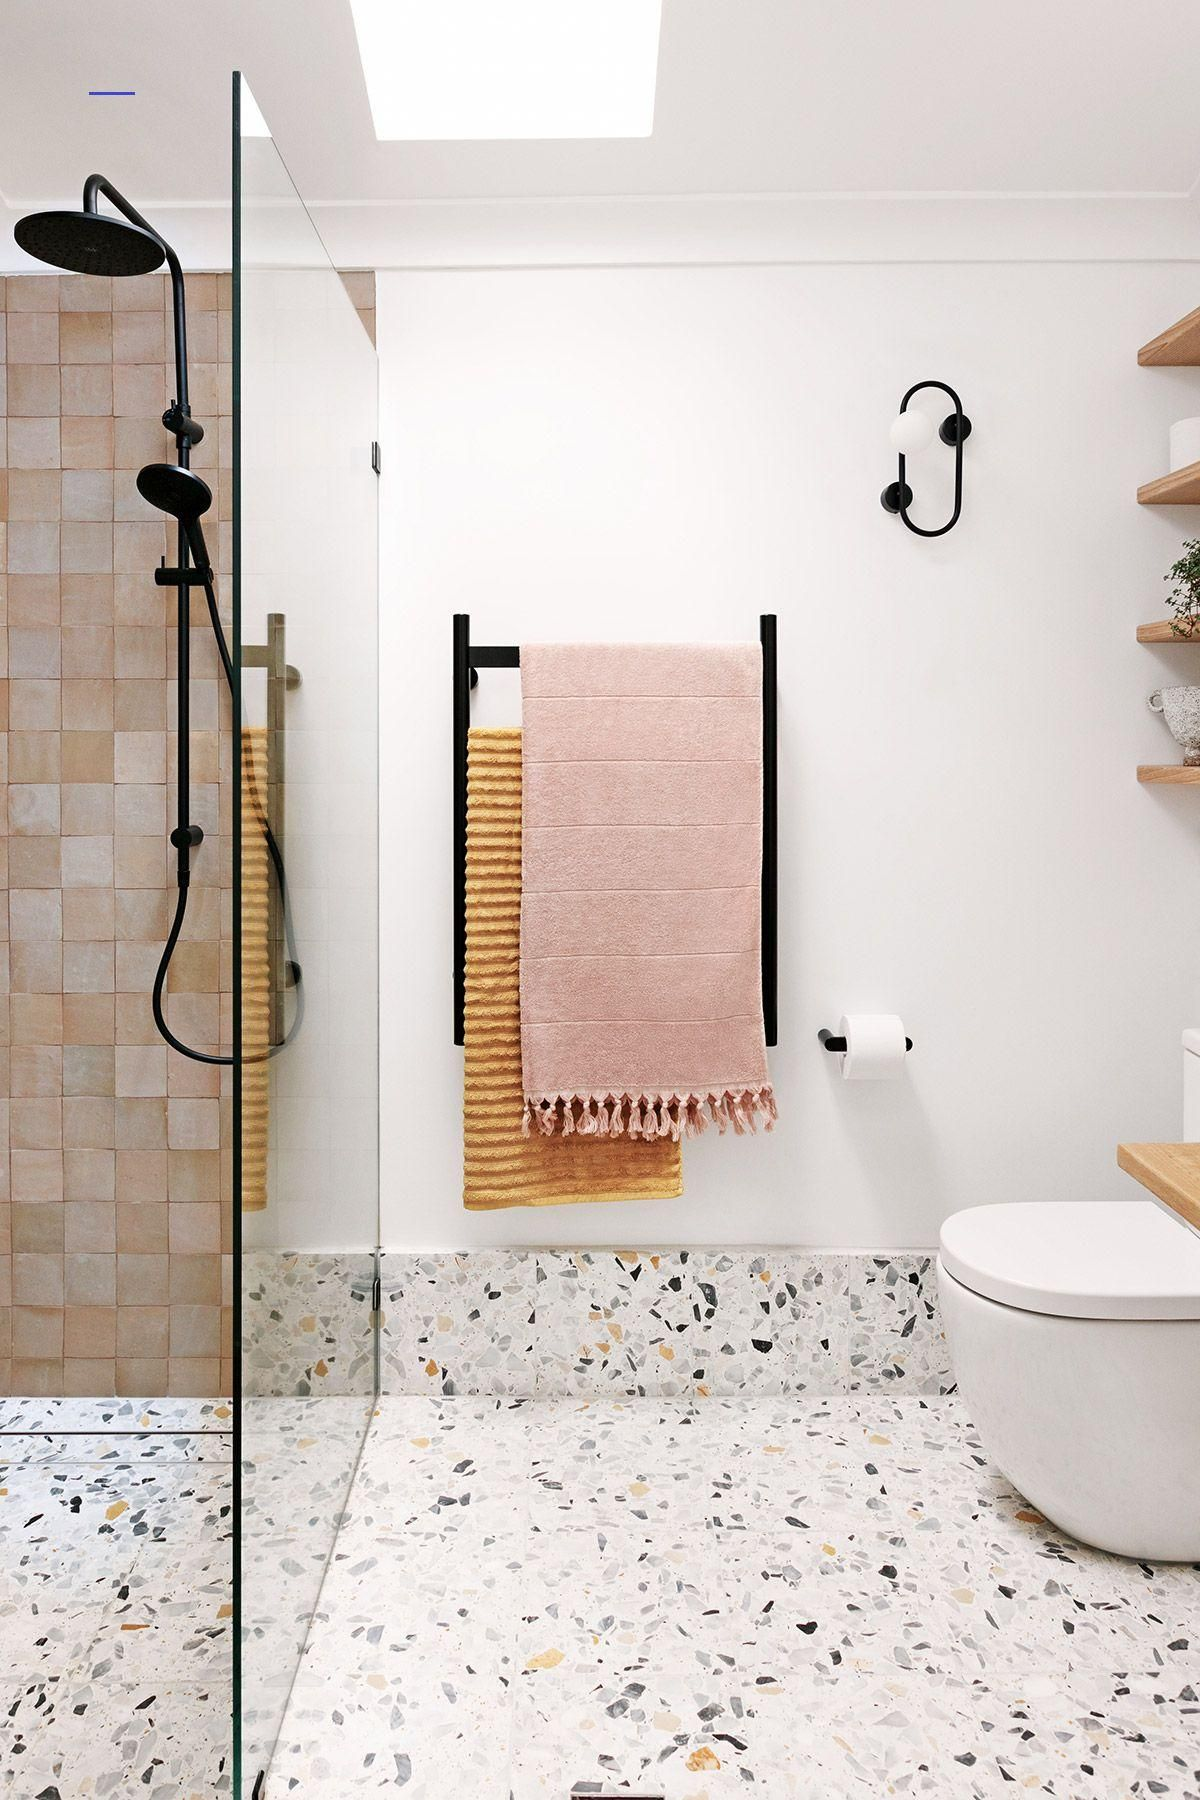 My Bathroom Renovation It S All About Terrazzo And Moroccan Tiles We Are Scout Bathroo In 2020 Bathroom Renovation Bathroom Interior Design Bathroom Renovations